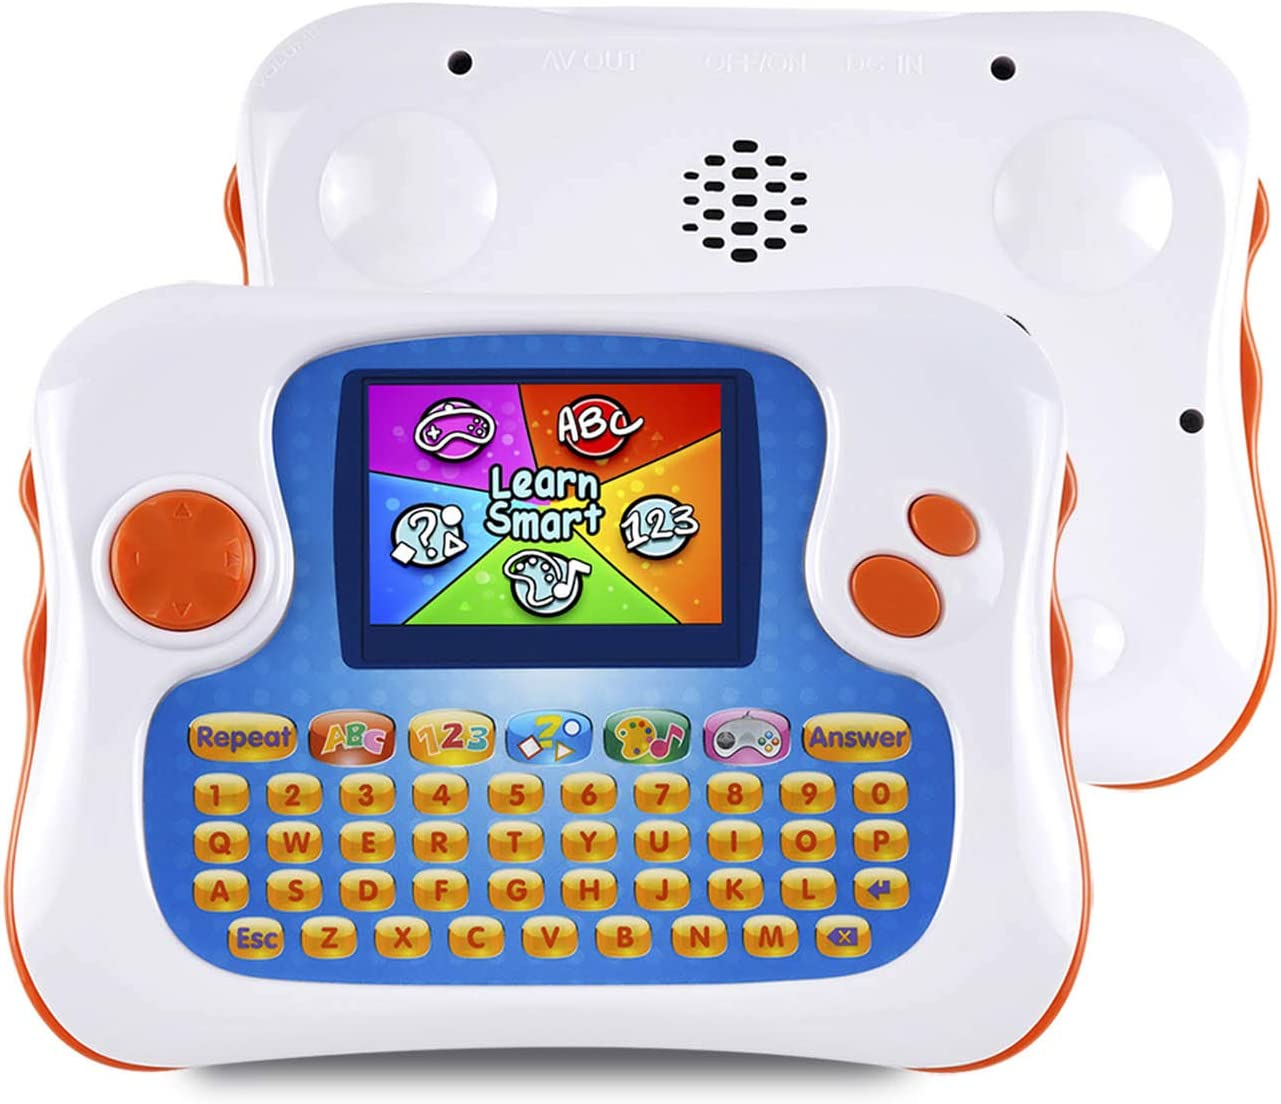 Kids Tablet,English-Spanish Bilingual Learning Tablet for Kids, Educational Toy with 104 Learning Apps/Games,Support TV Out Function,Great Choice for Preschool Toddlers Babies Early Education